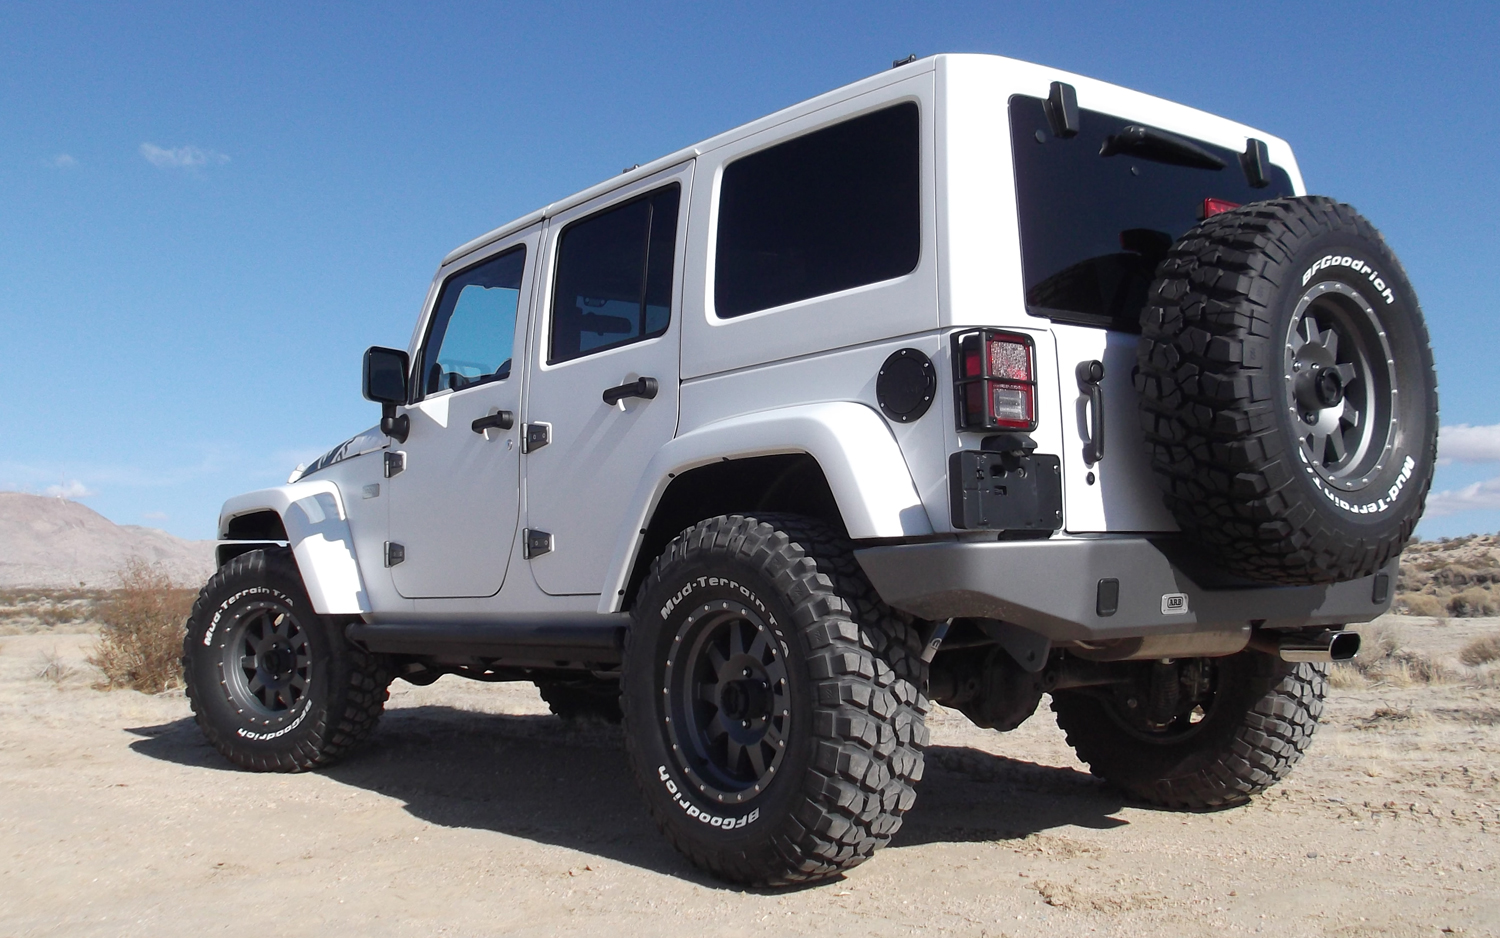 jeep wrangler unlimited rubicon technical details history photos on. Cars Review. Best American Auto & Cars Review